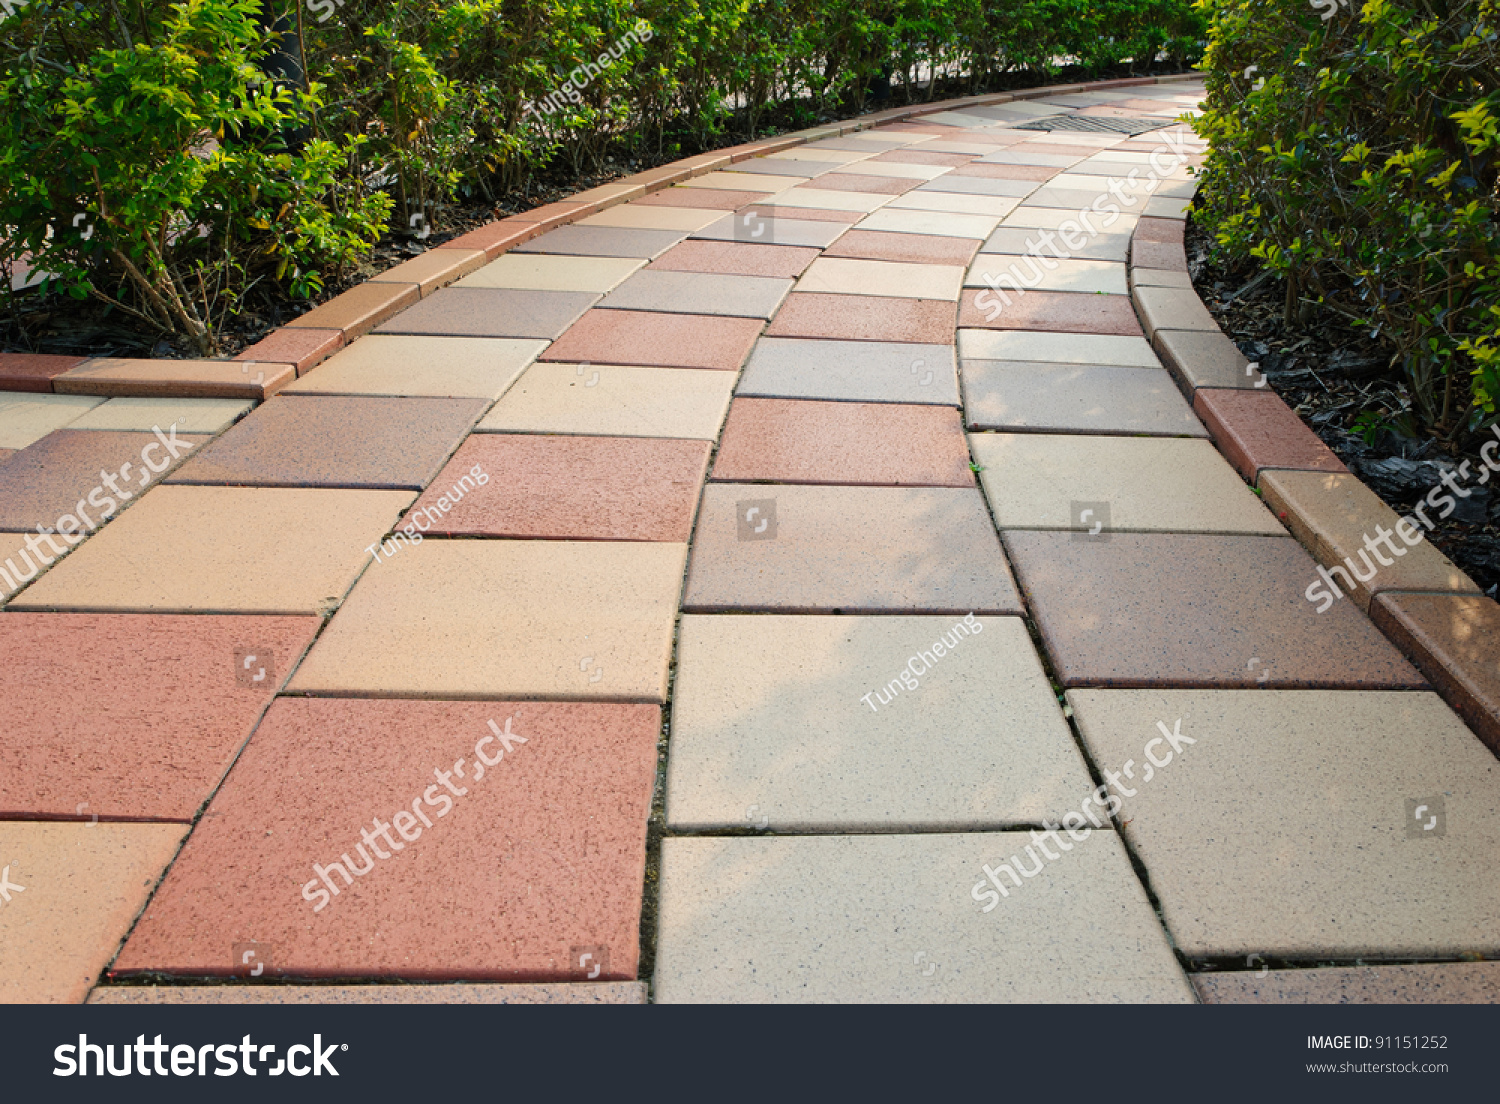 Problems With Brick Floors : Brick floor pathway with cut bush in both side stock photo